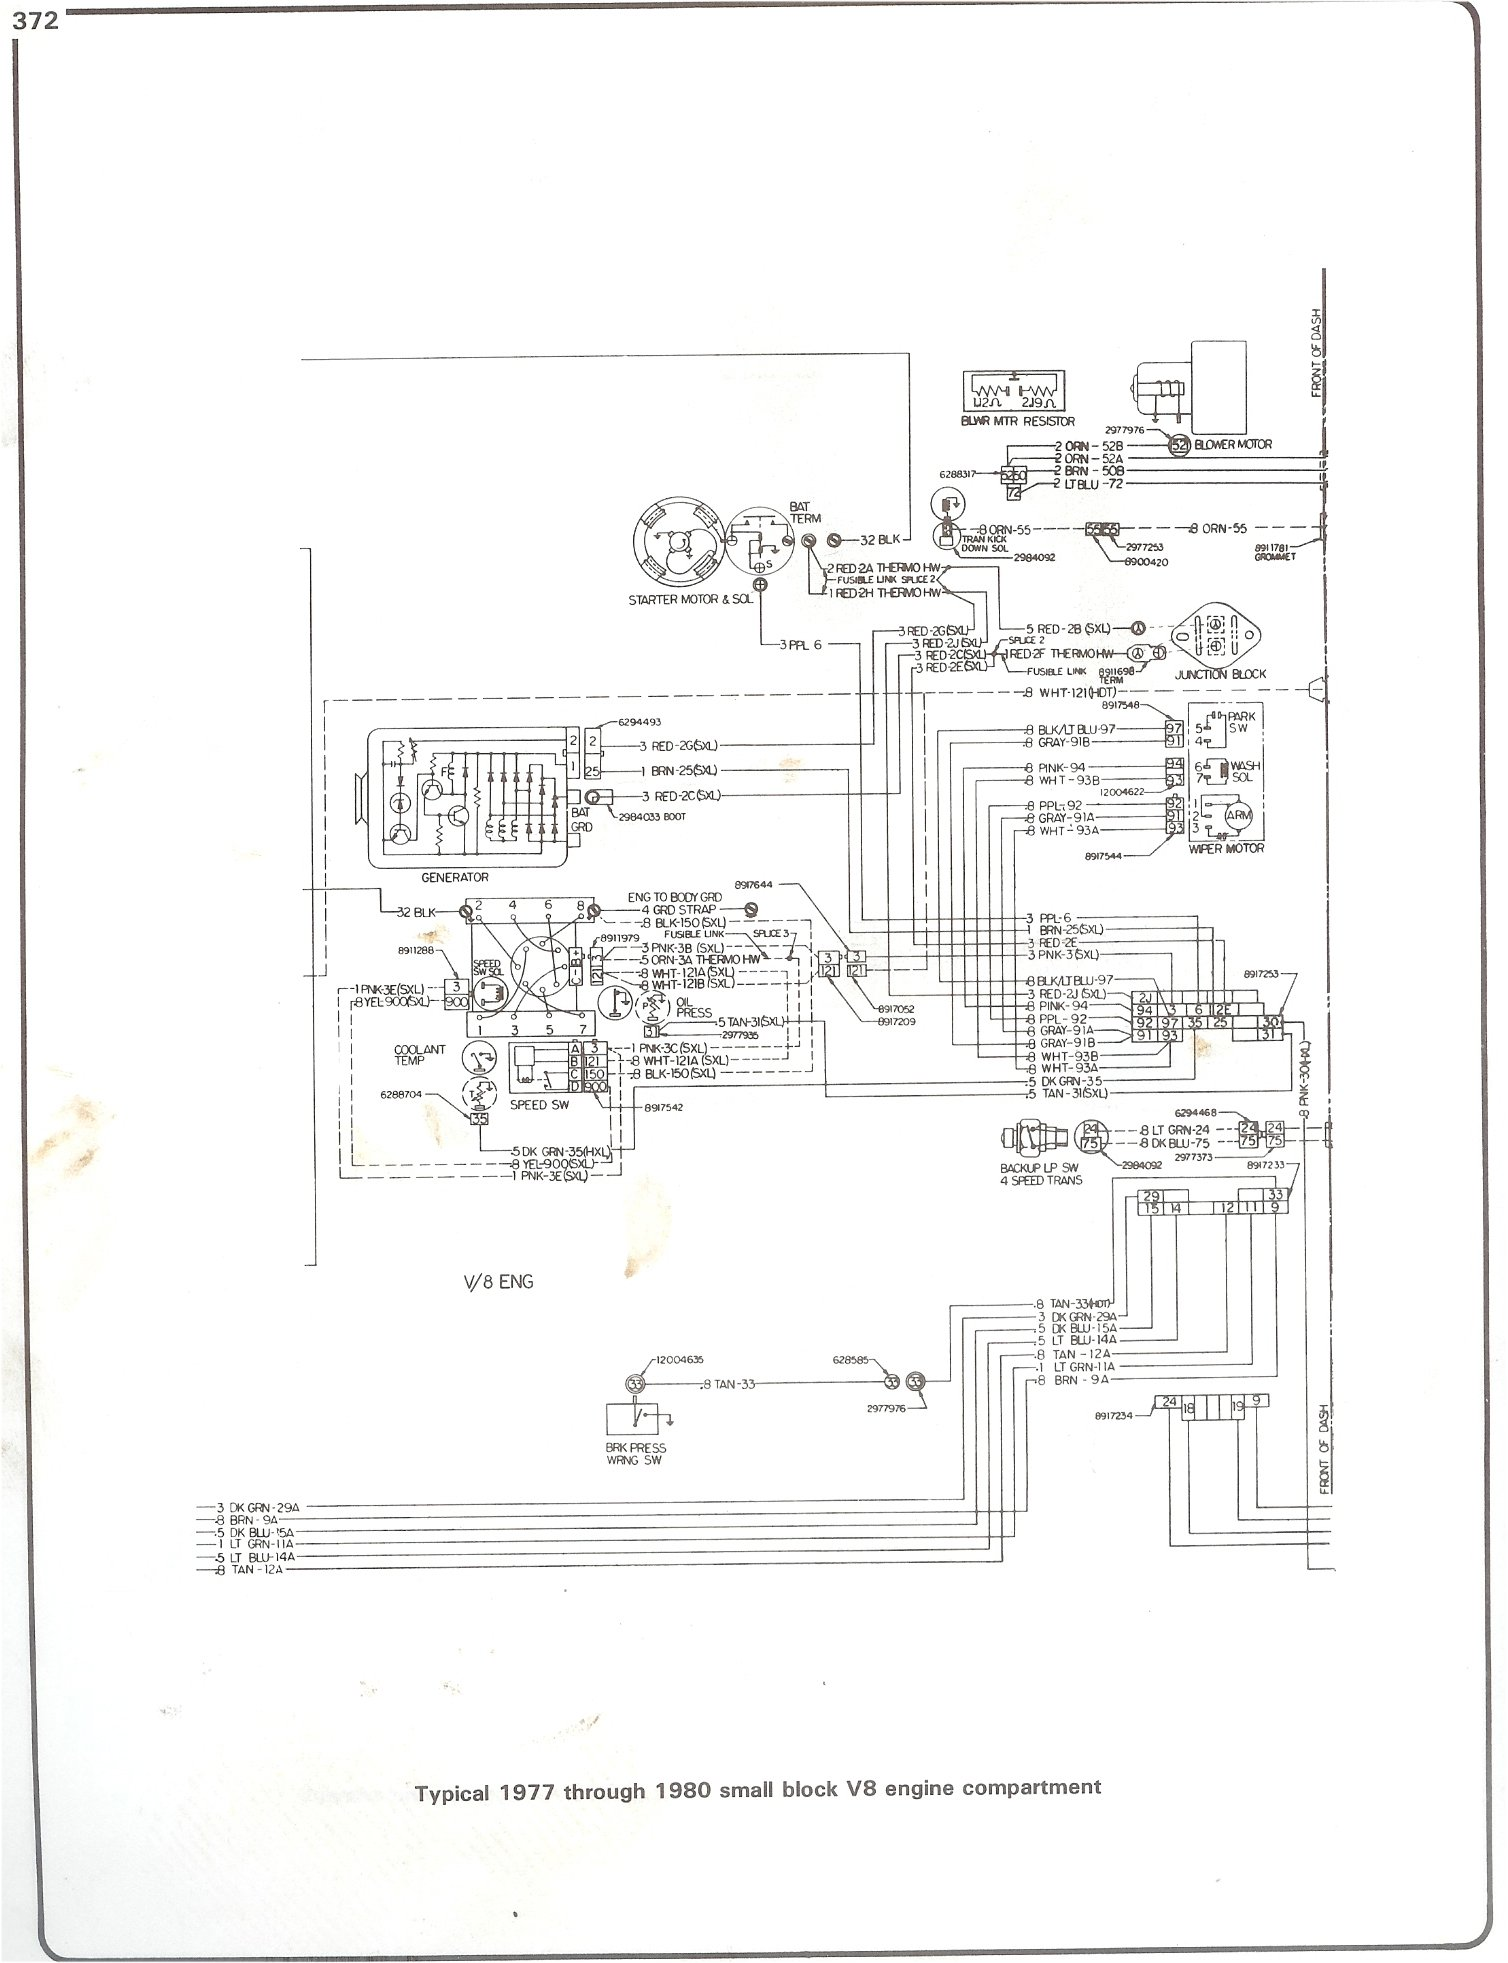 Complete 73 87 Wiring Diagrams 1982 Ford Mustang Engine Diagram 77 80 Sbc